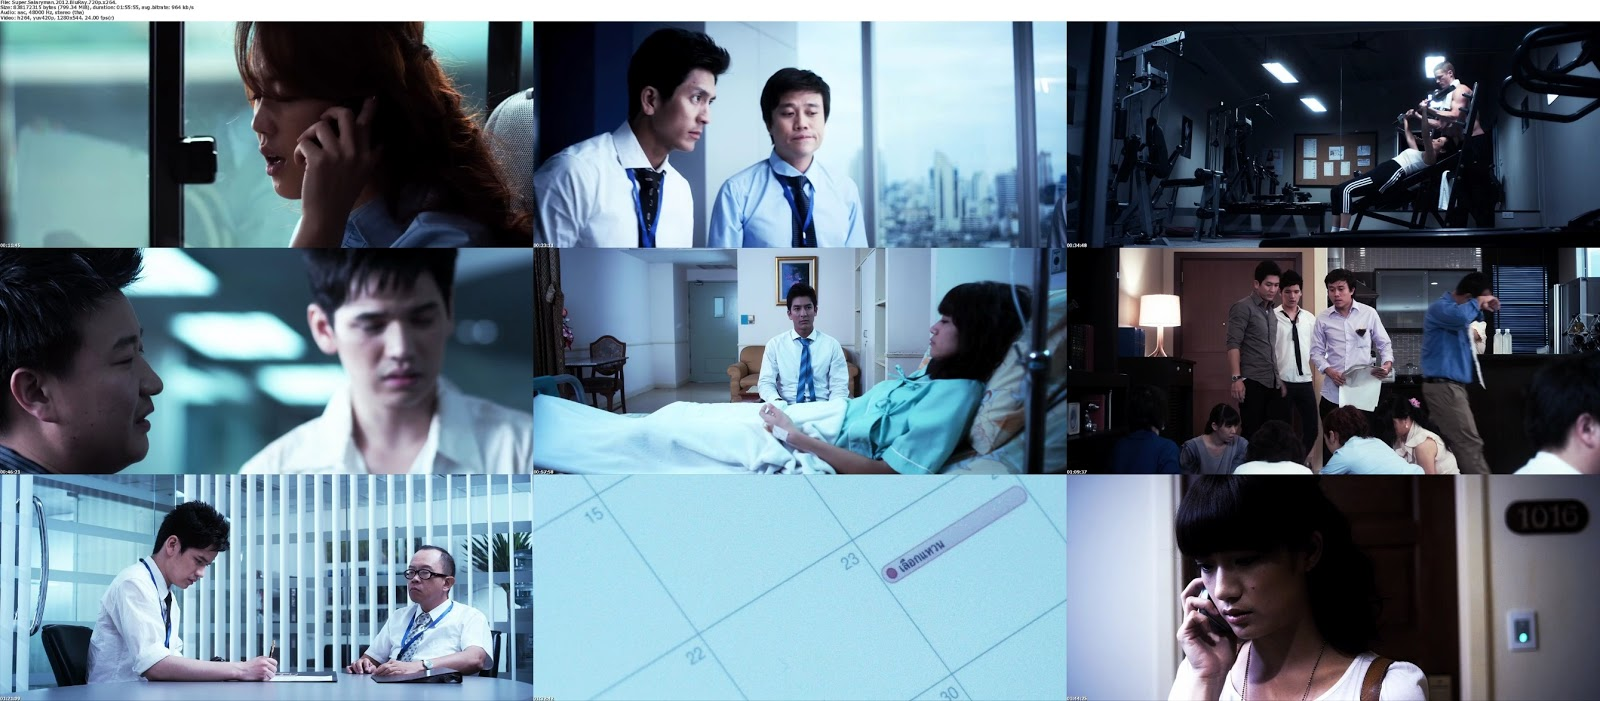 Super+Salaryman+(2012)+BluRay+720p+BRRip+800MB+Hnmovies